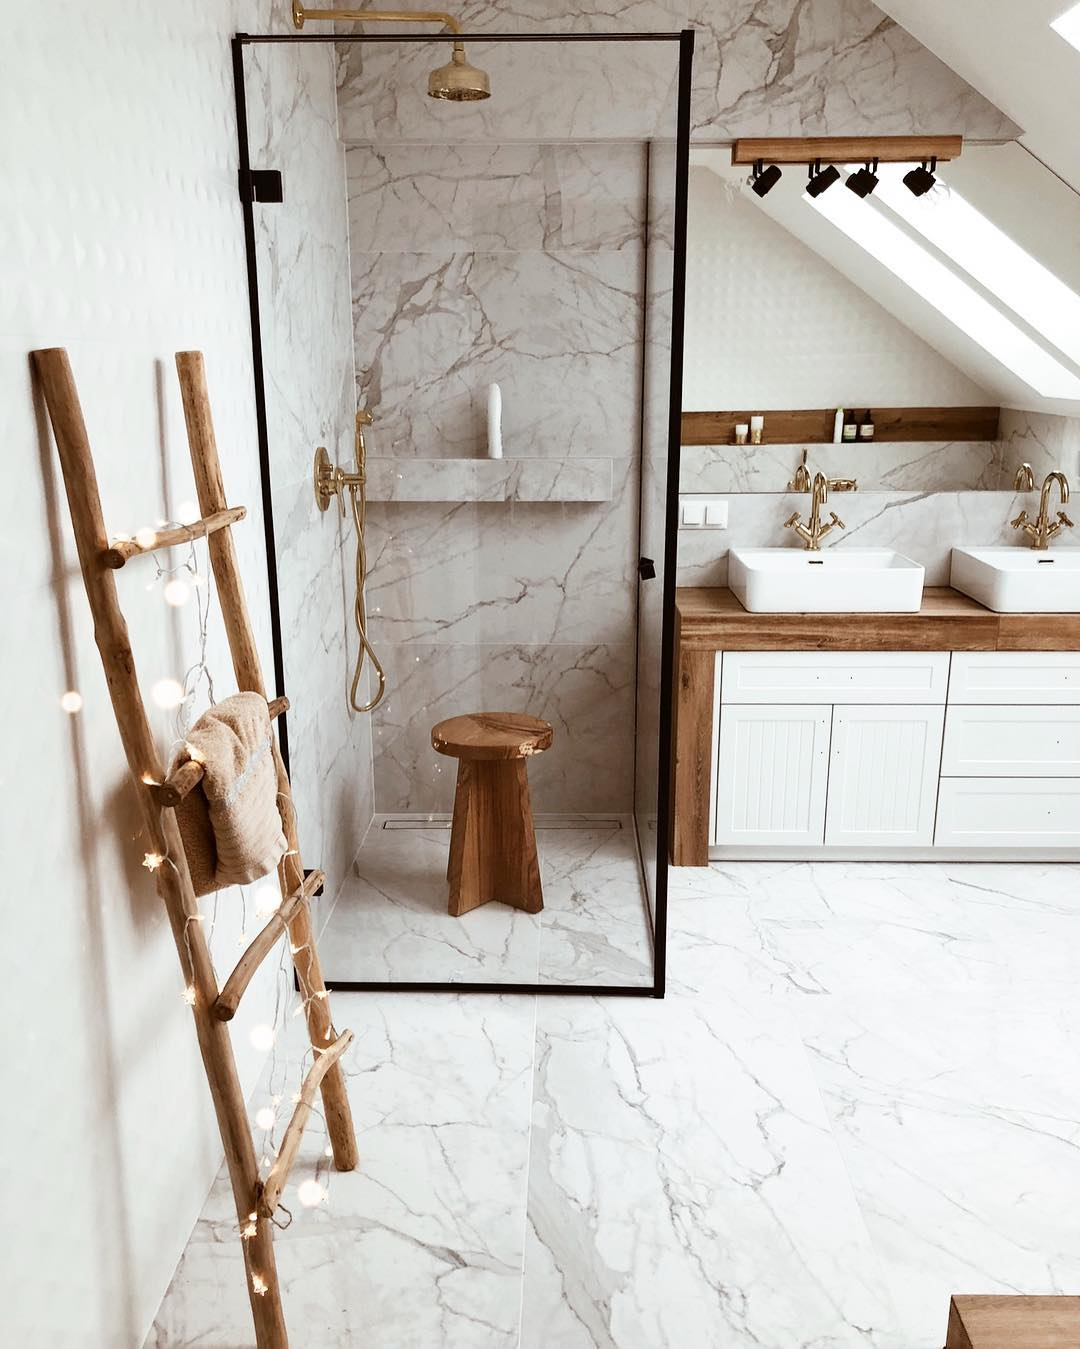 Elevate your vintage bathroom with these 10 chic ideas - Vinterior